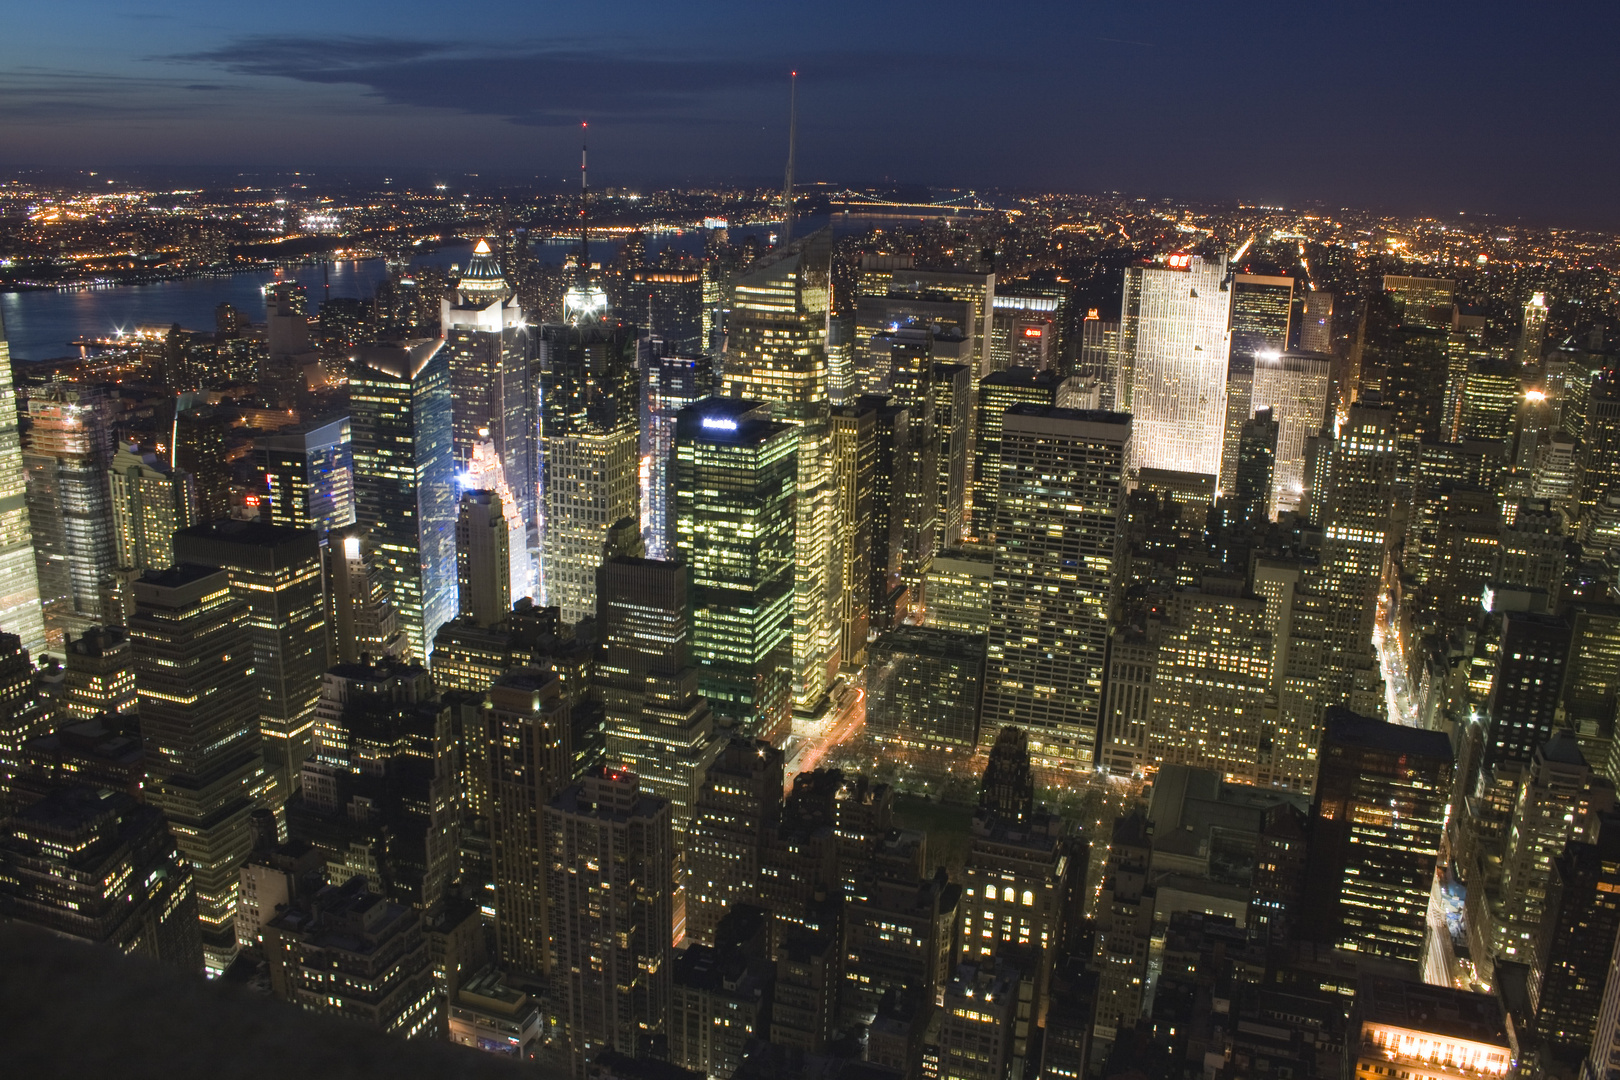 I wanna wake up in a city that never sleeps